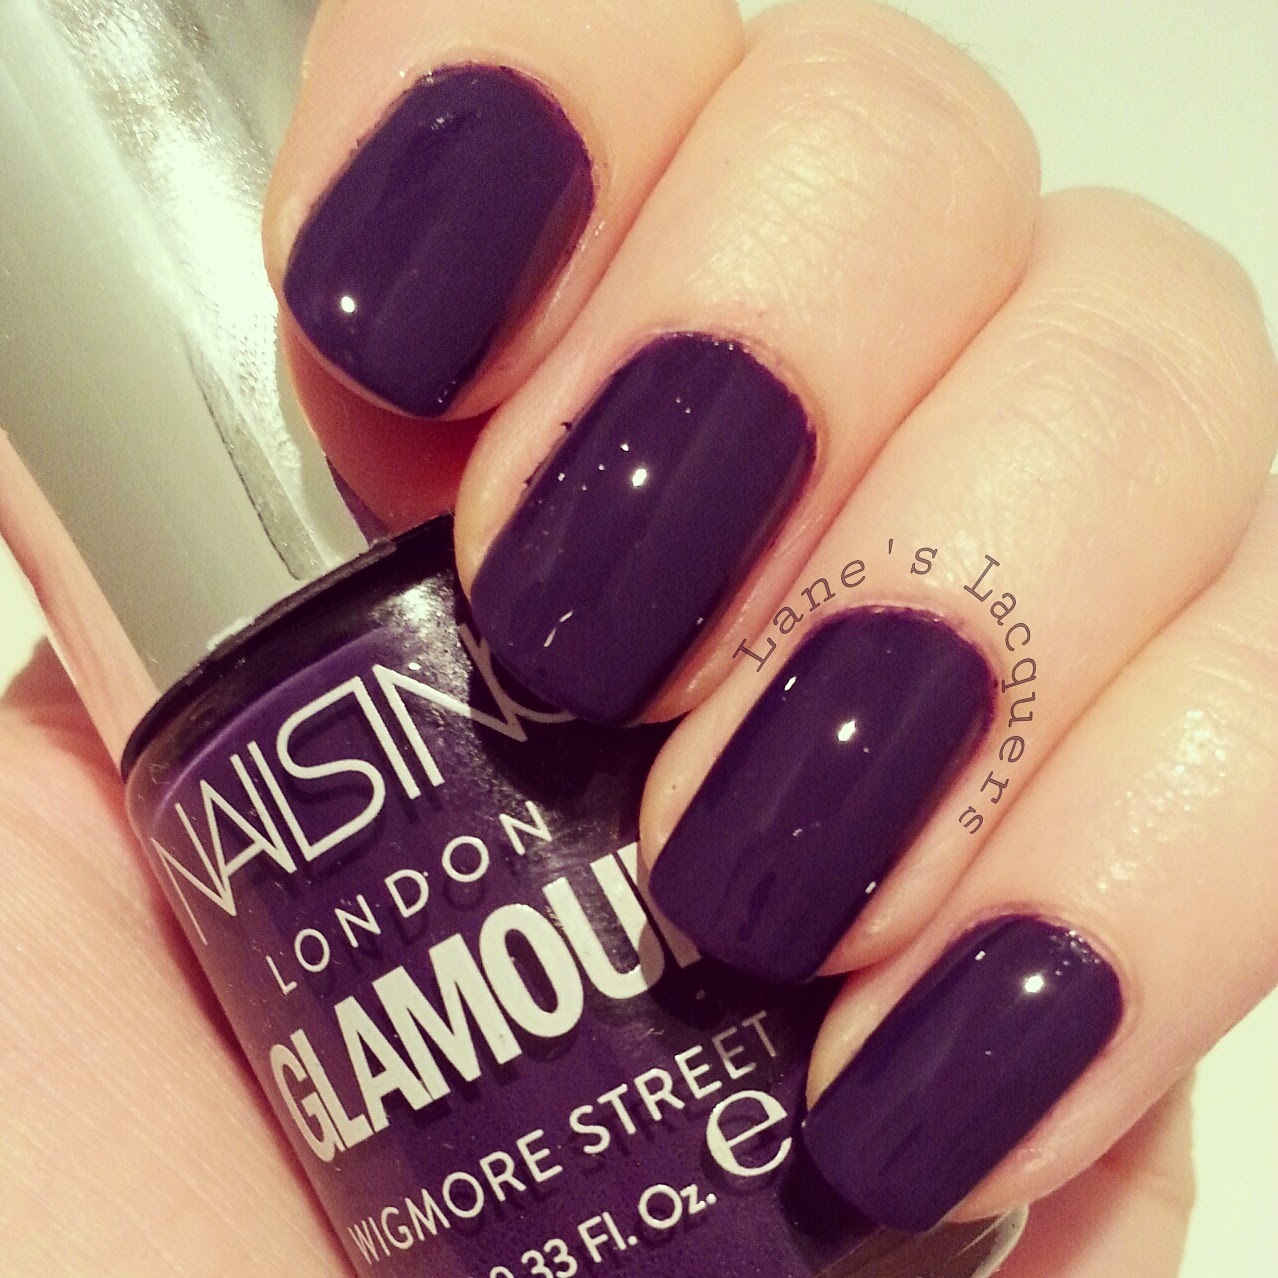 nails-inc-glamour-magazine-wigmore-street-swatch-manicure (2)